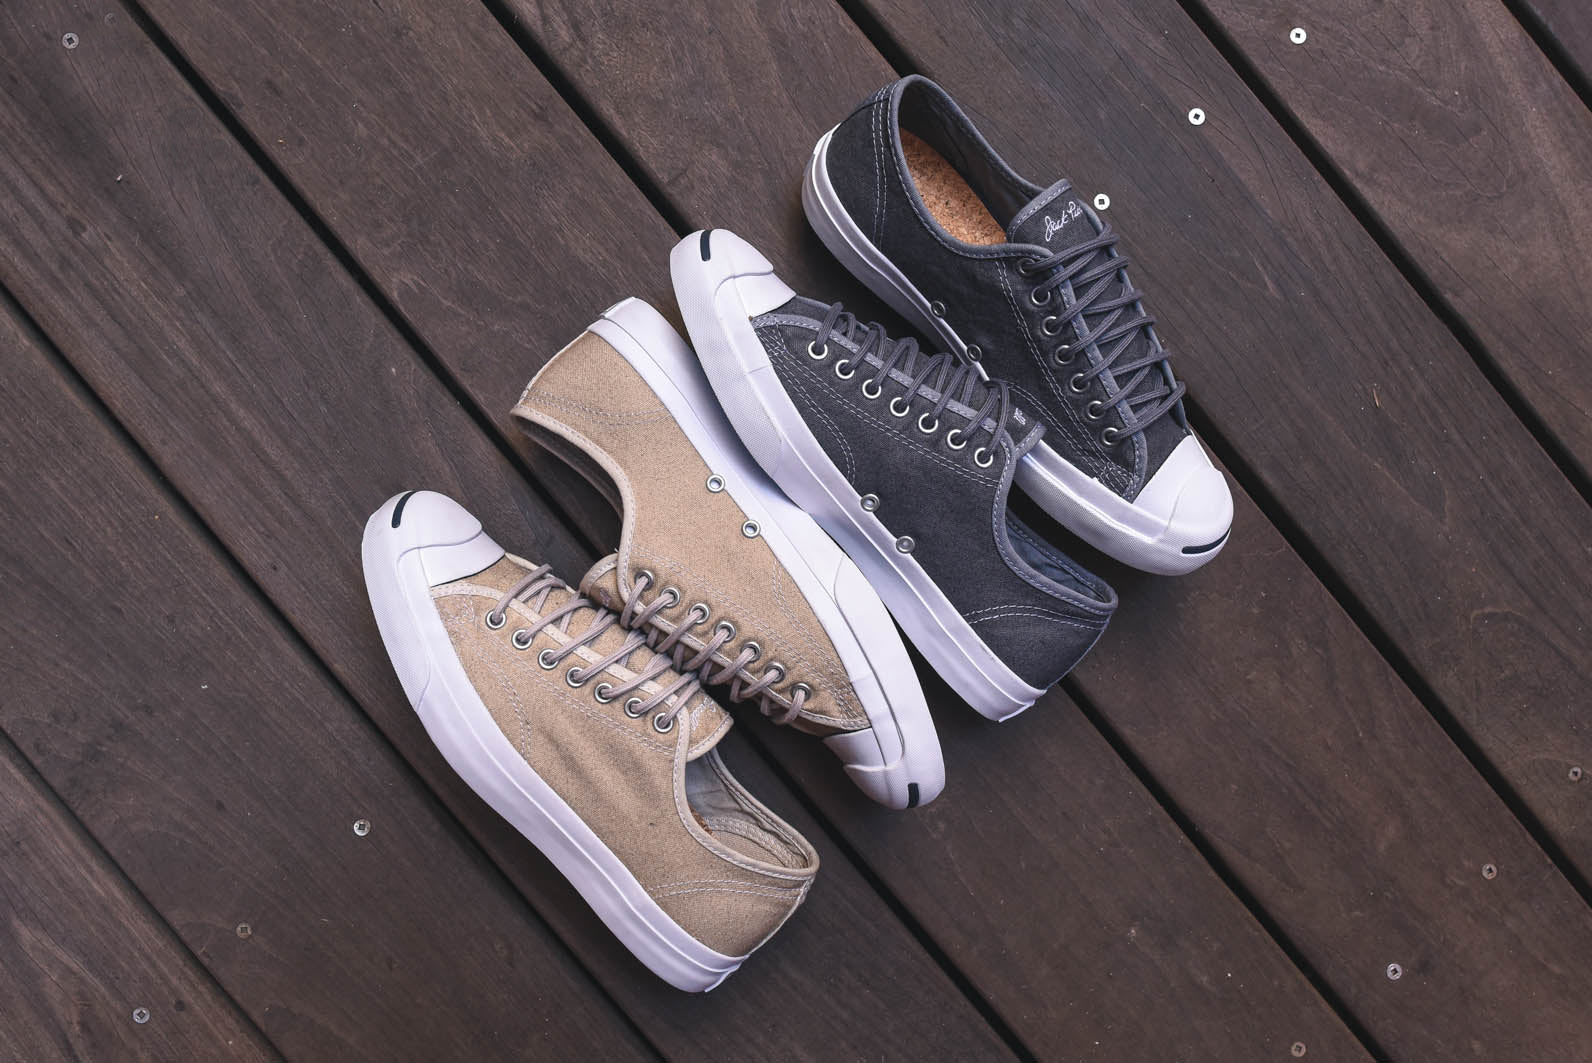 7882c08e4ff1 Converse Jack Purcell - Wool Canvas Pack – Kith